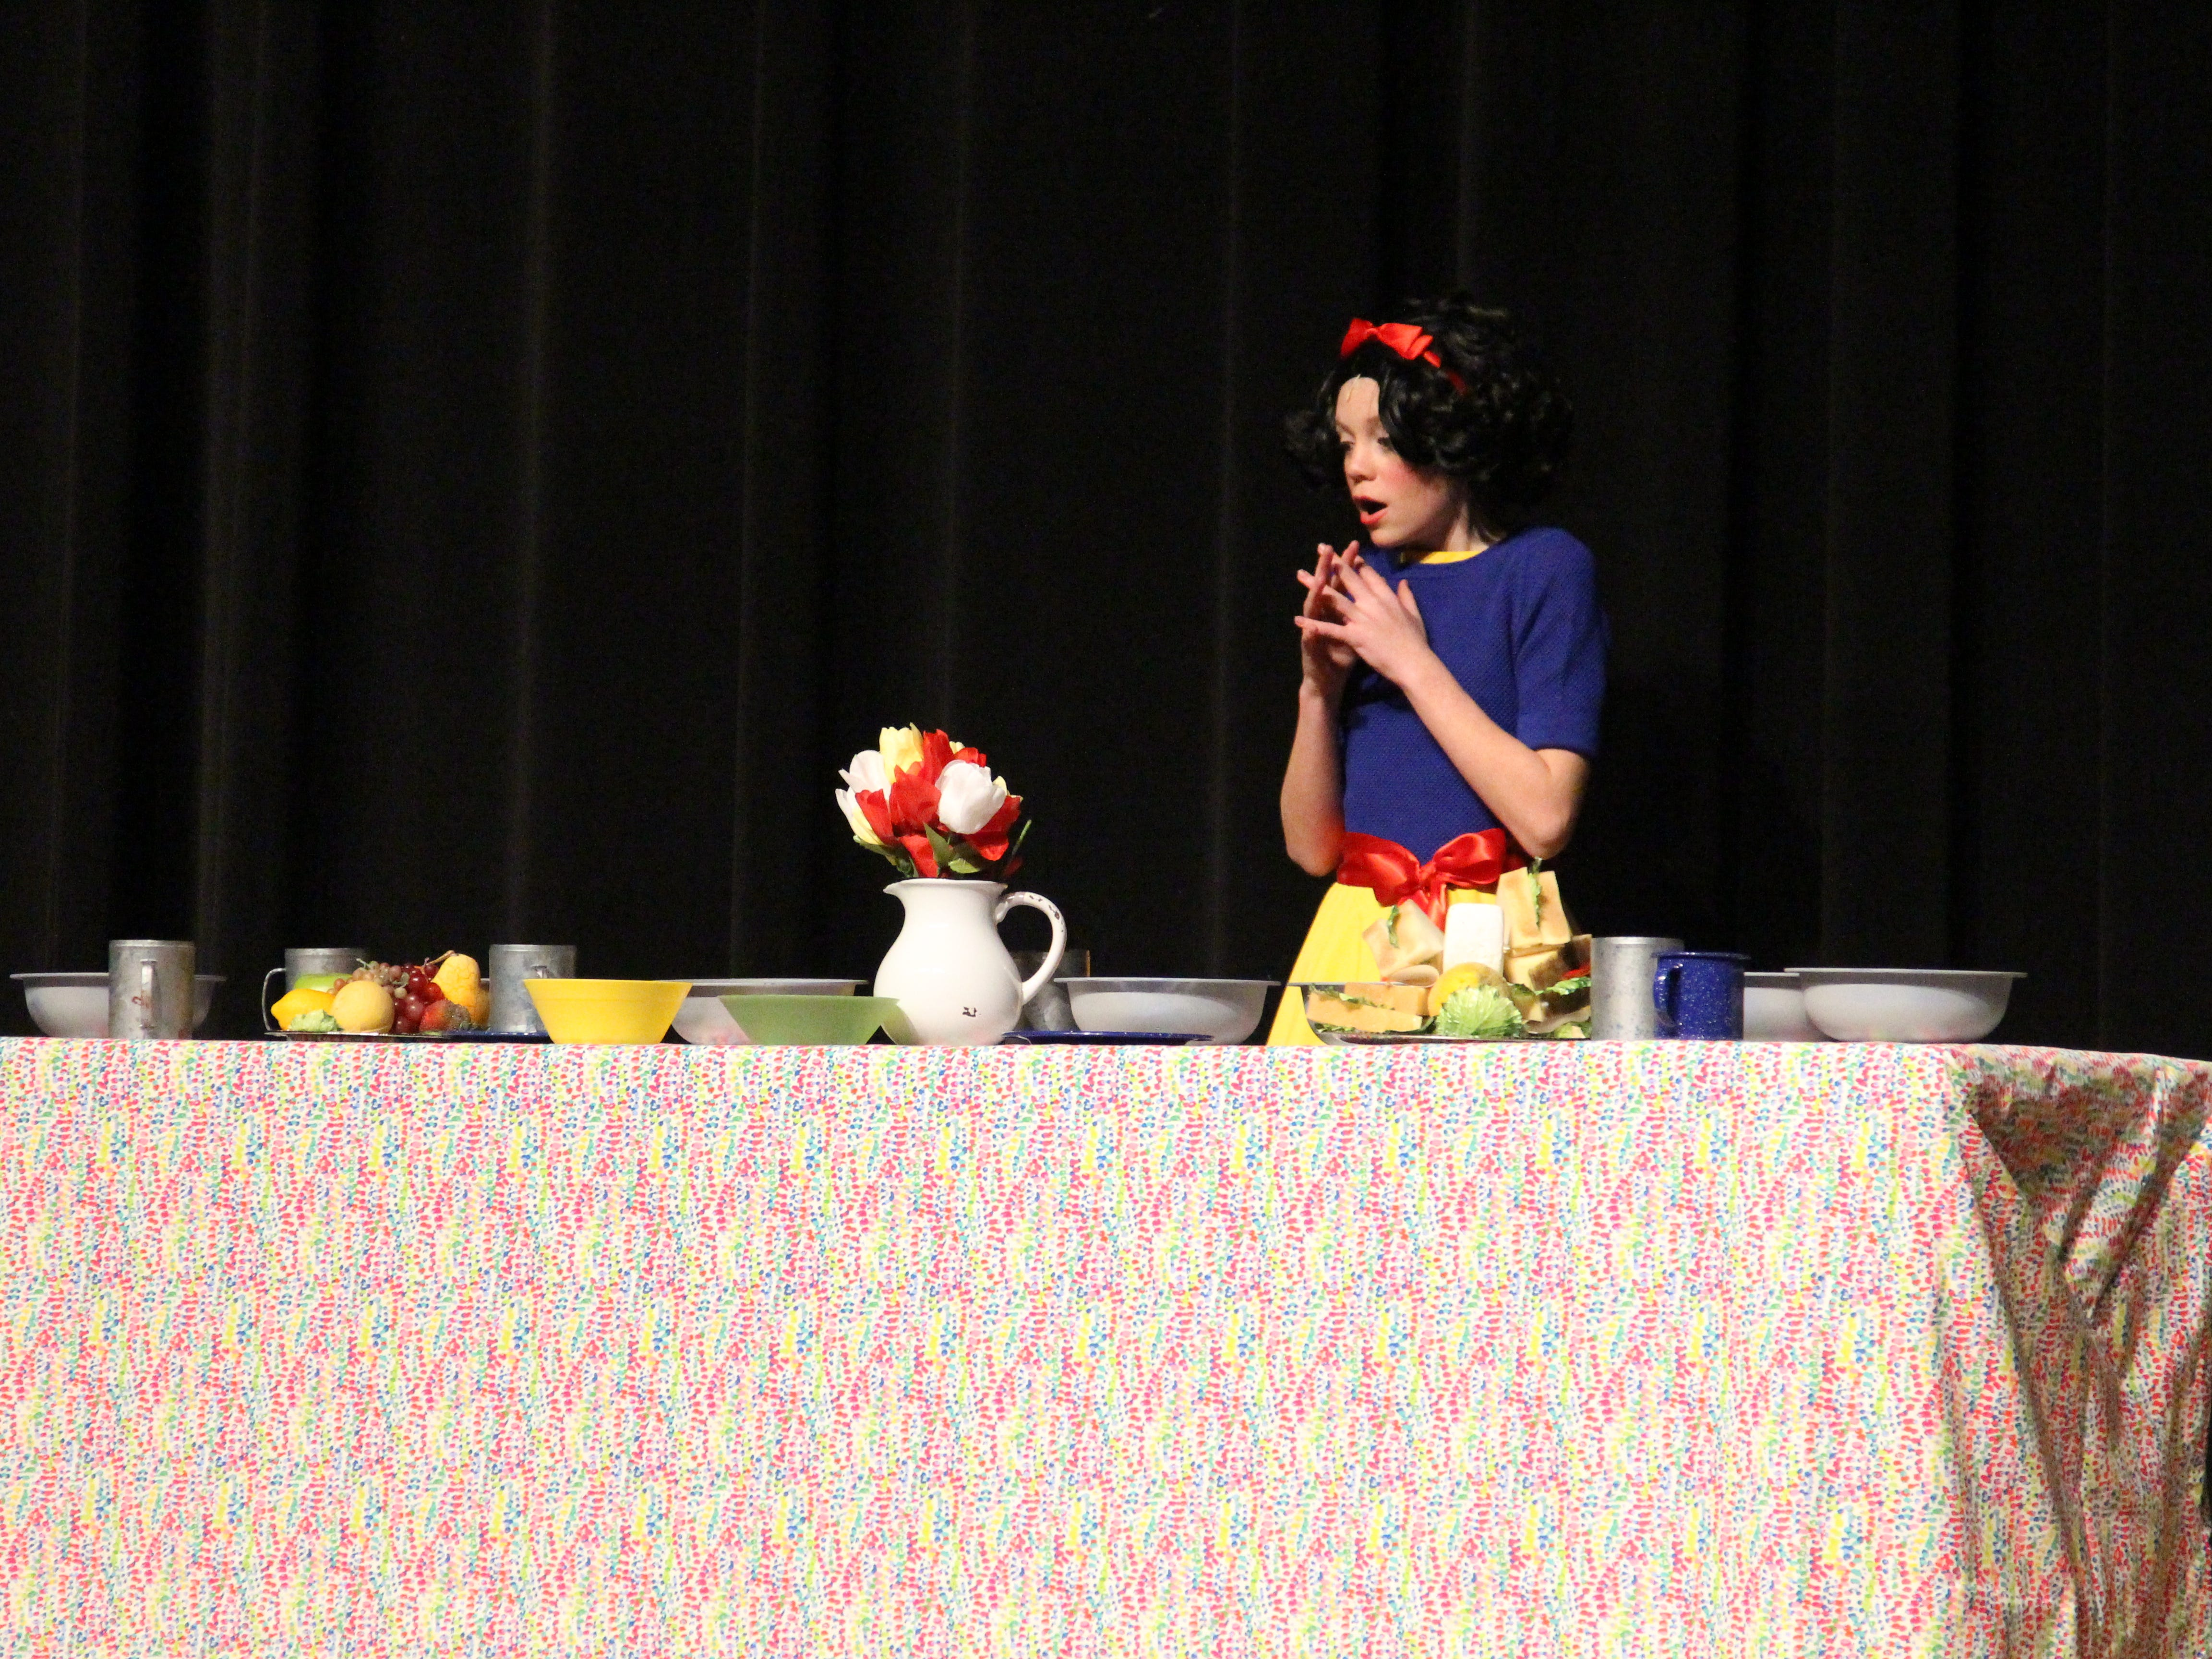 """Snow White, played by Morgan Elliott, stumbles upon the dwarves' abode after finding out that the evil queen wants her dead in the Marion Palace Theatre's production of """"The Tale of Snow White,"""" an adaptation of the classic fairy tale. The production starts at 7:30 p.m. Friday and Saturday, Feb. 8 and 9 and at  2 p.m. Sunday, Feb. 10."""